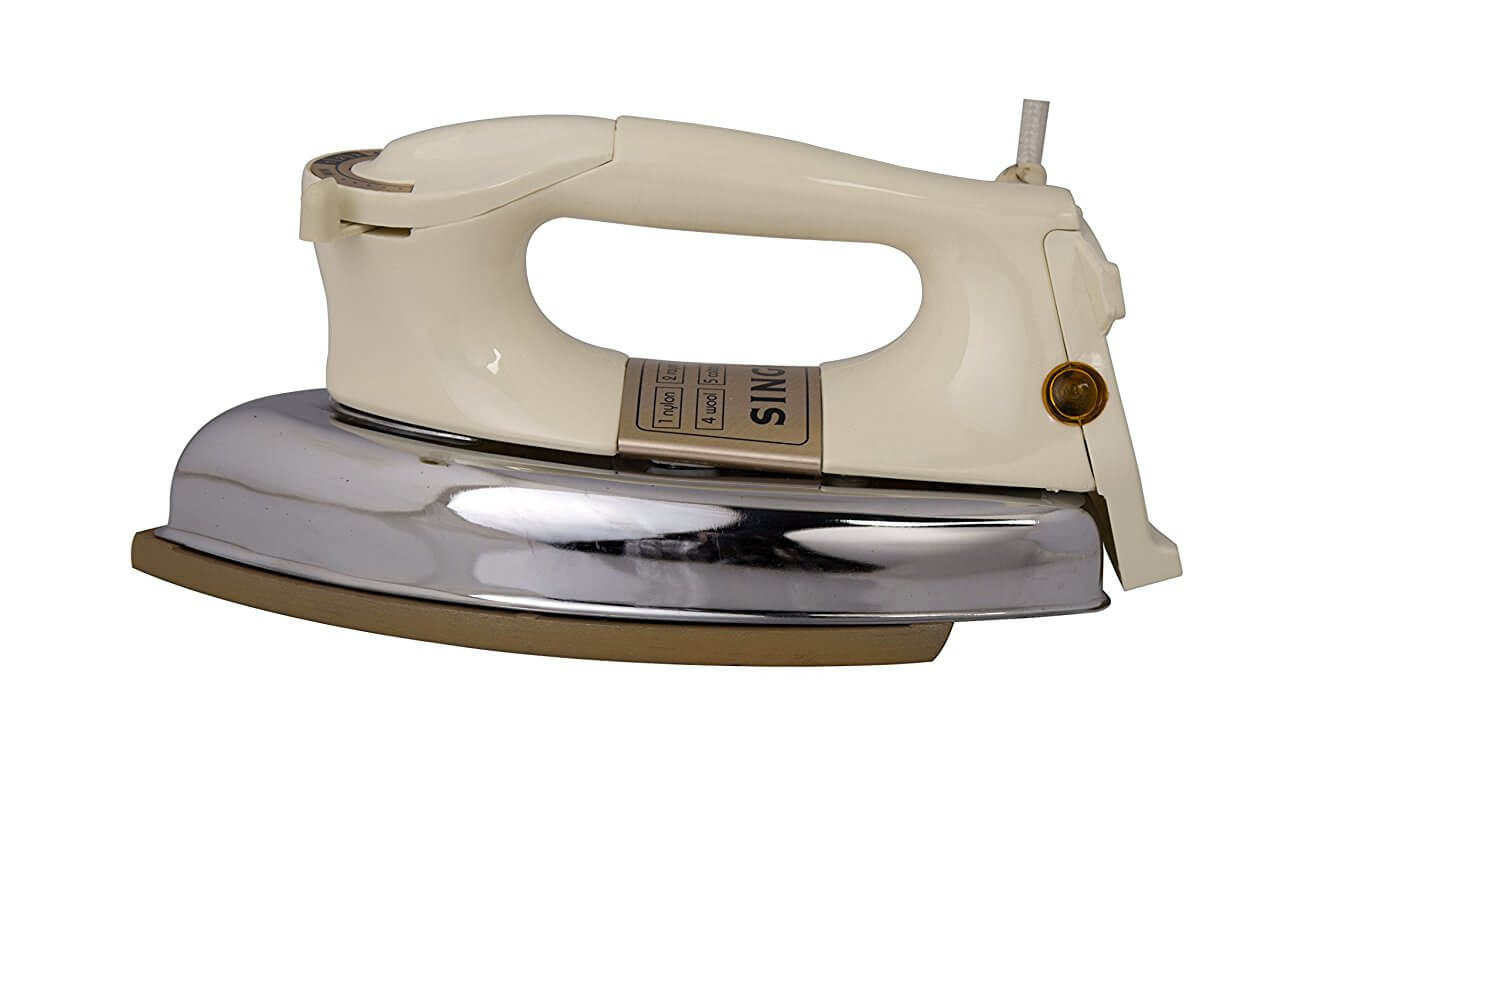 Singer Shakti Plus 1000 Watts Heavy Weight Dry Iron